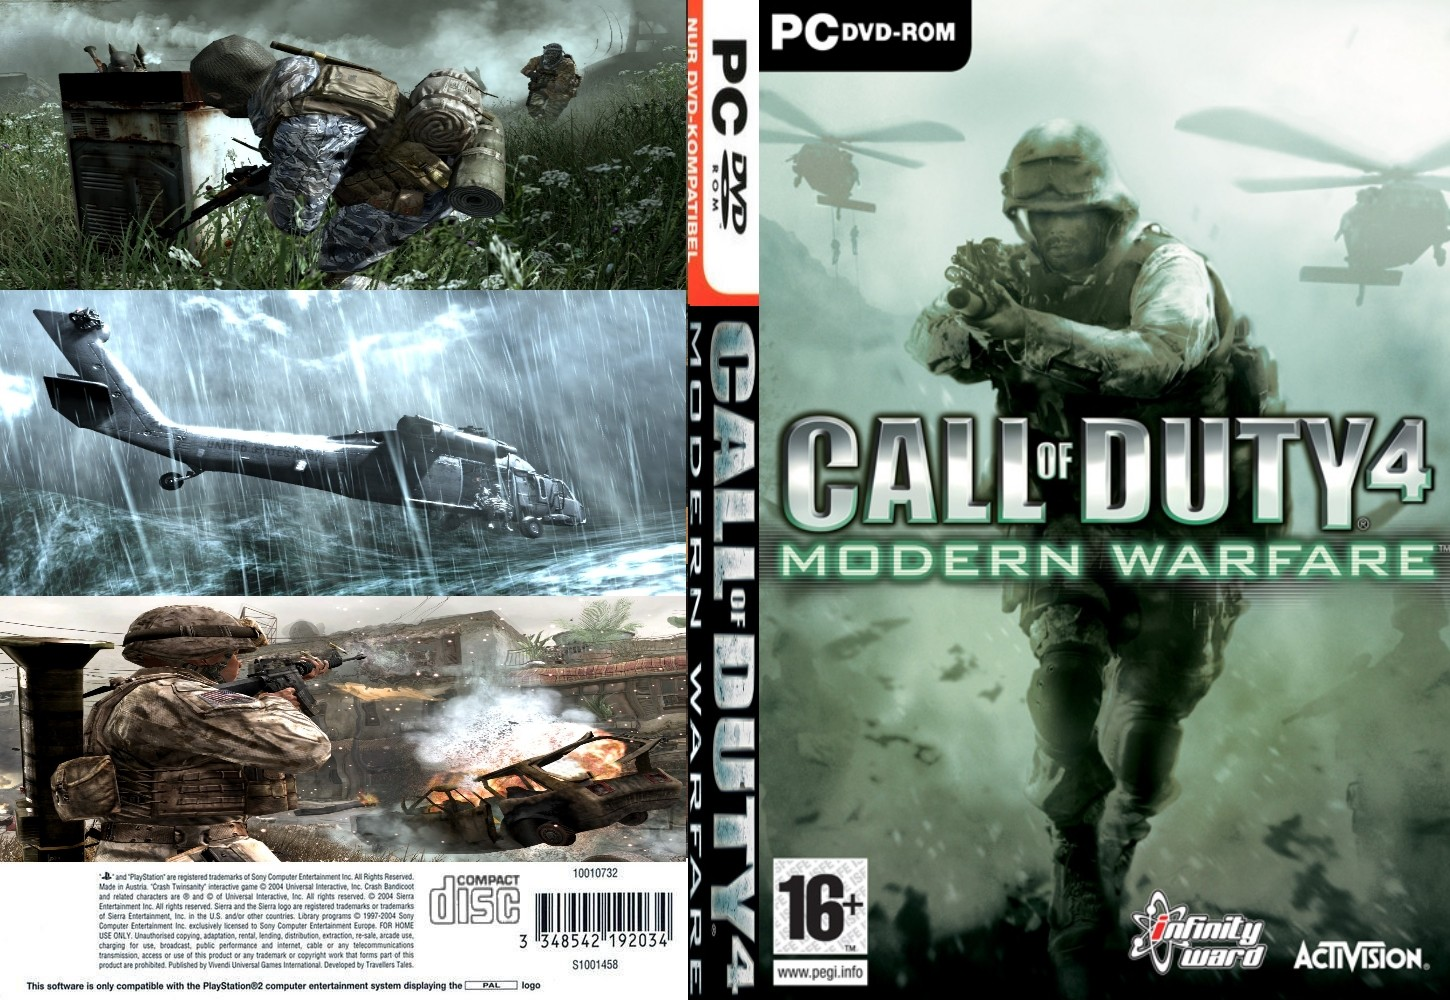 [Aporte]Call of Duty Saga Completa full español para pc